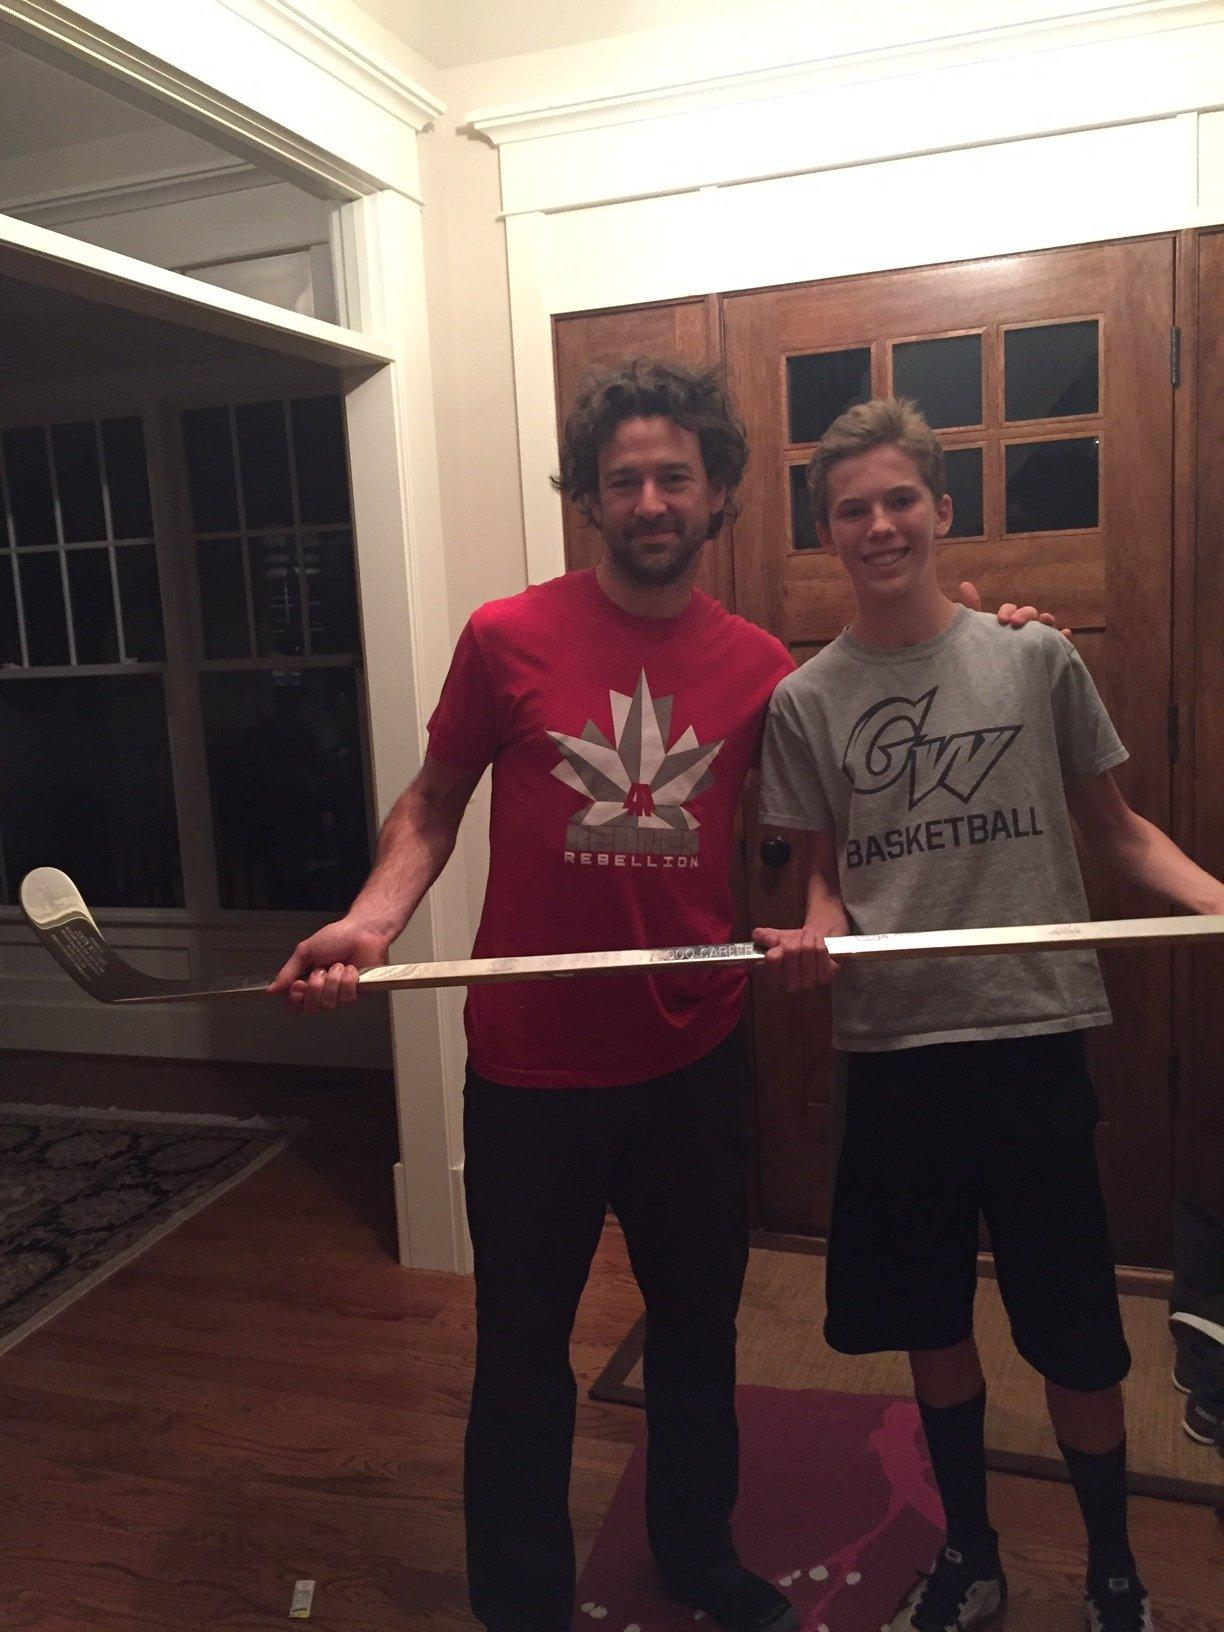 Sentry staff reporter Topher Wagner (right) and Washington Capitals right winger Justin Williams (left)